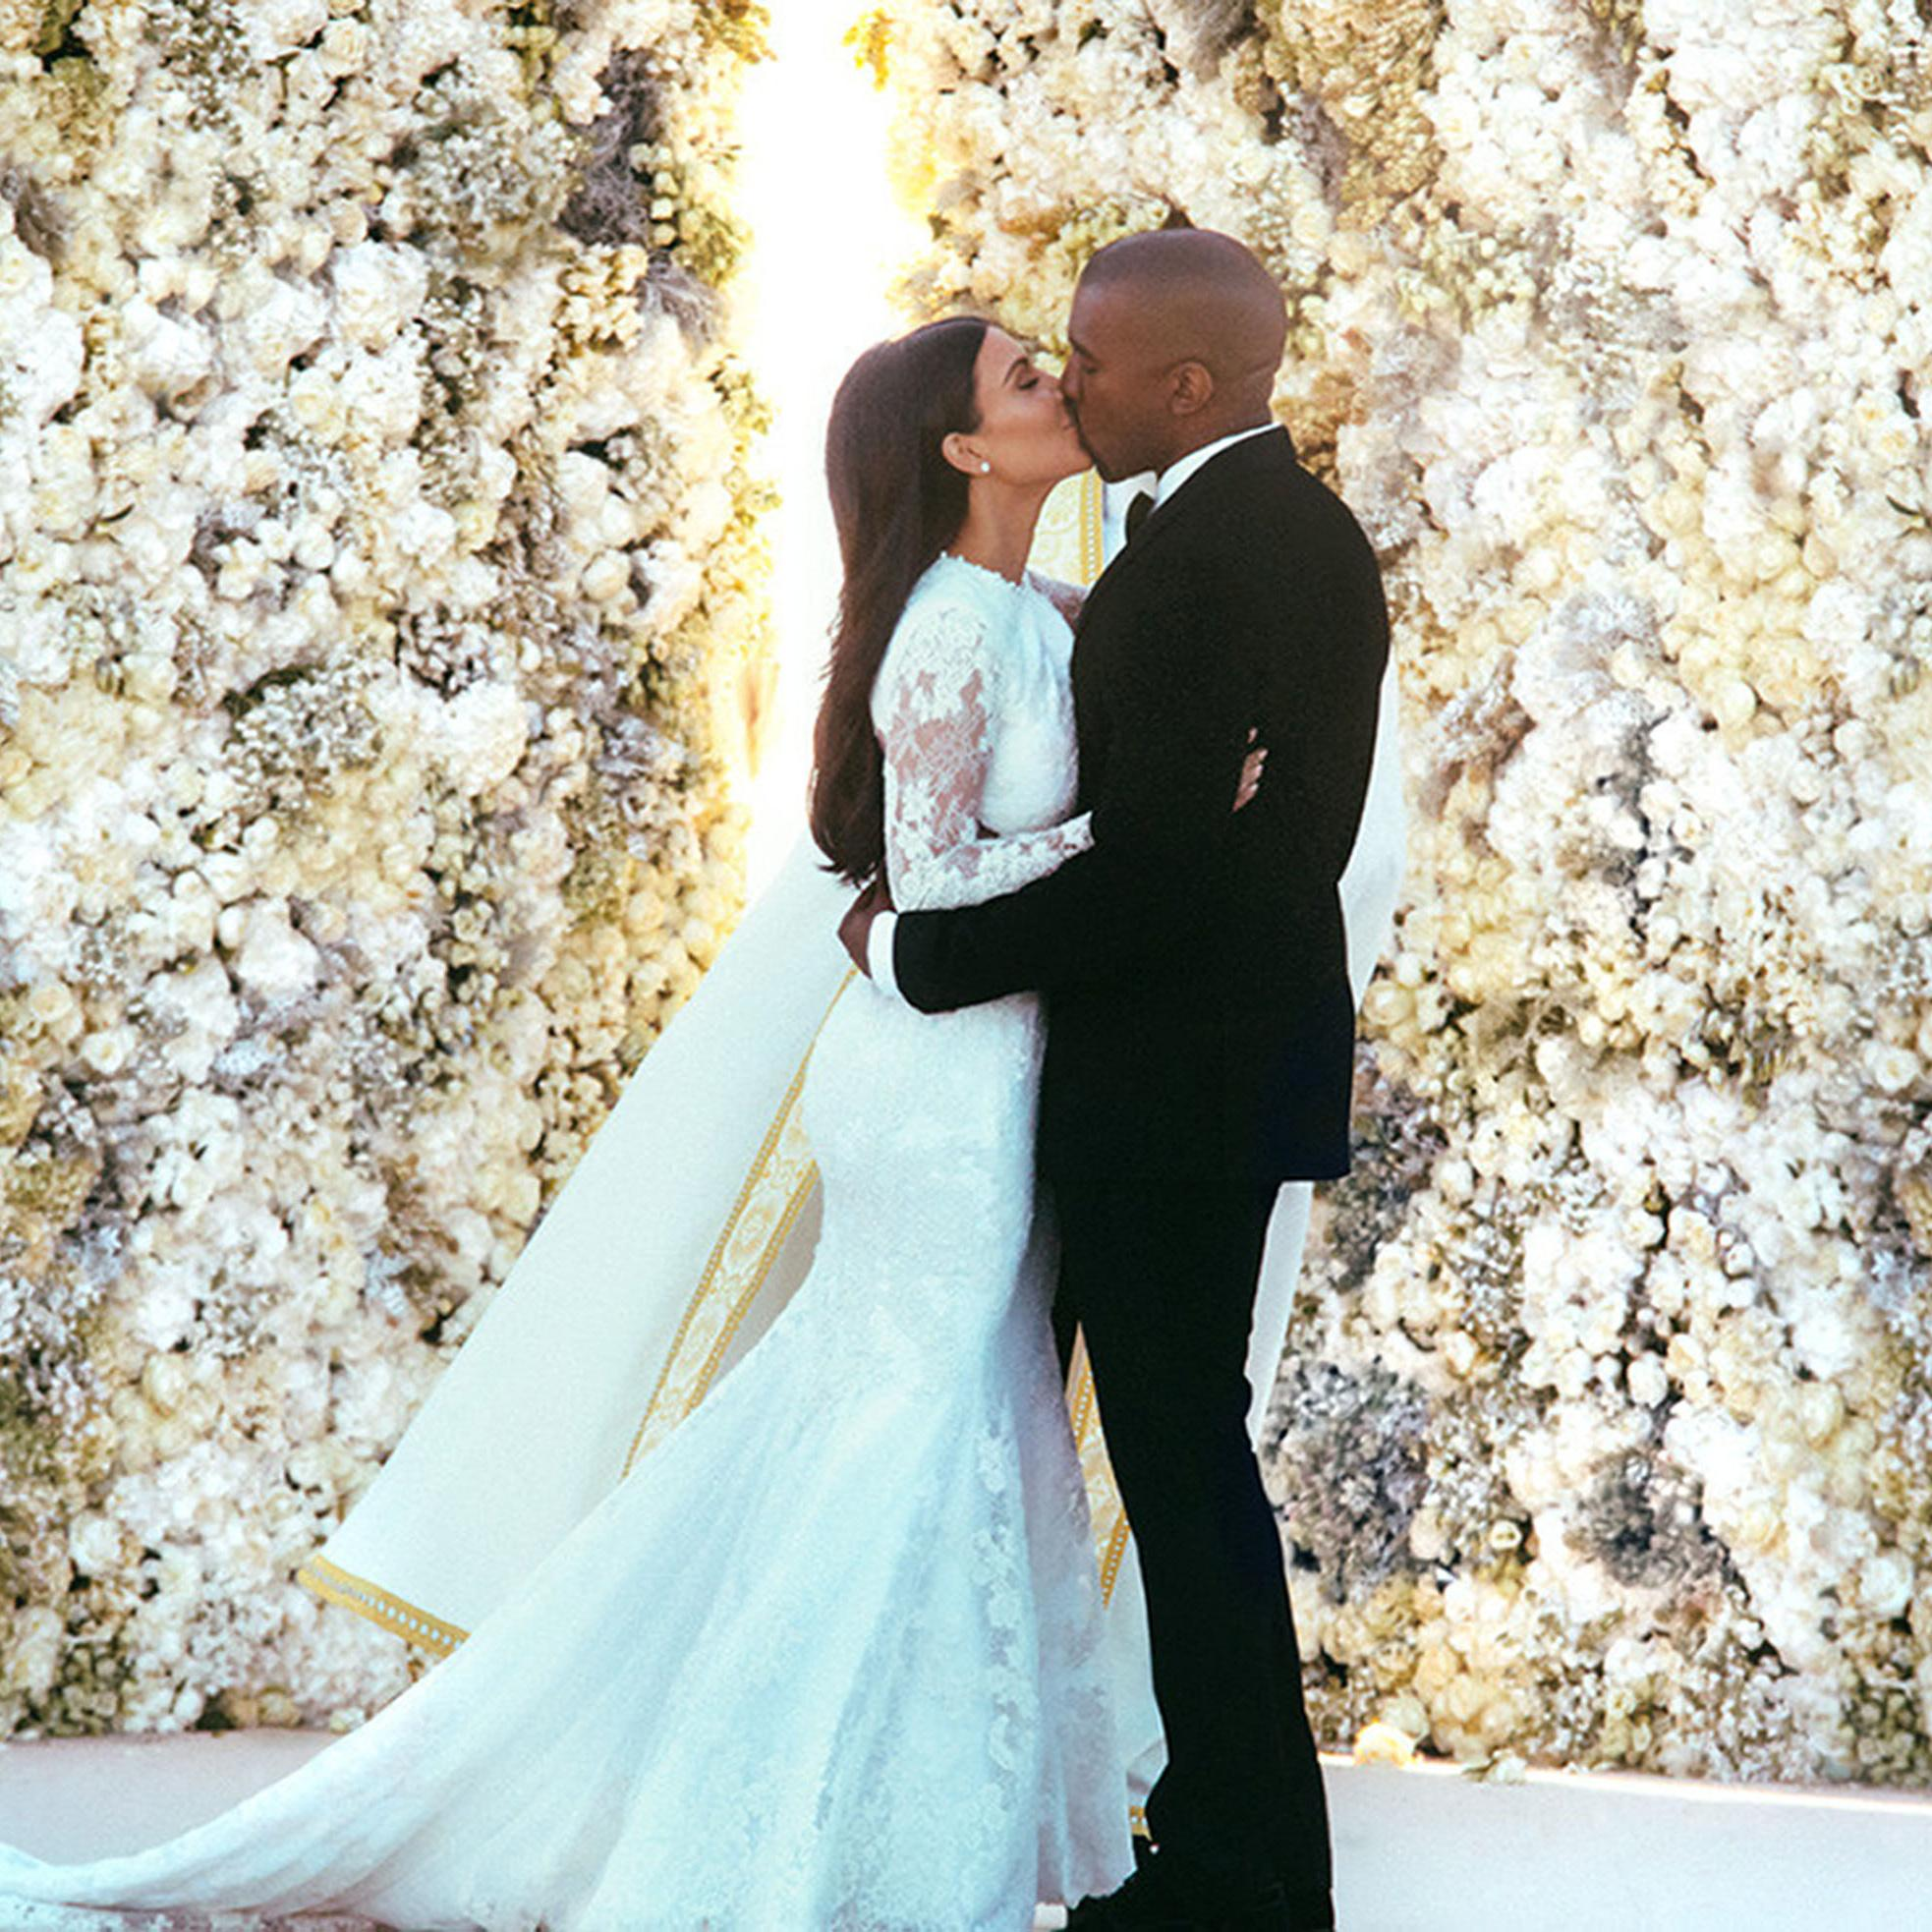 Eggs, fakes and Kim kissing Kanye: 10 Instagram posts that defined the decade